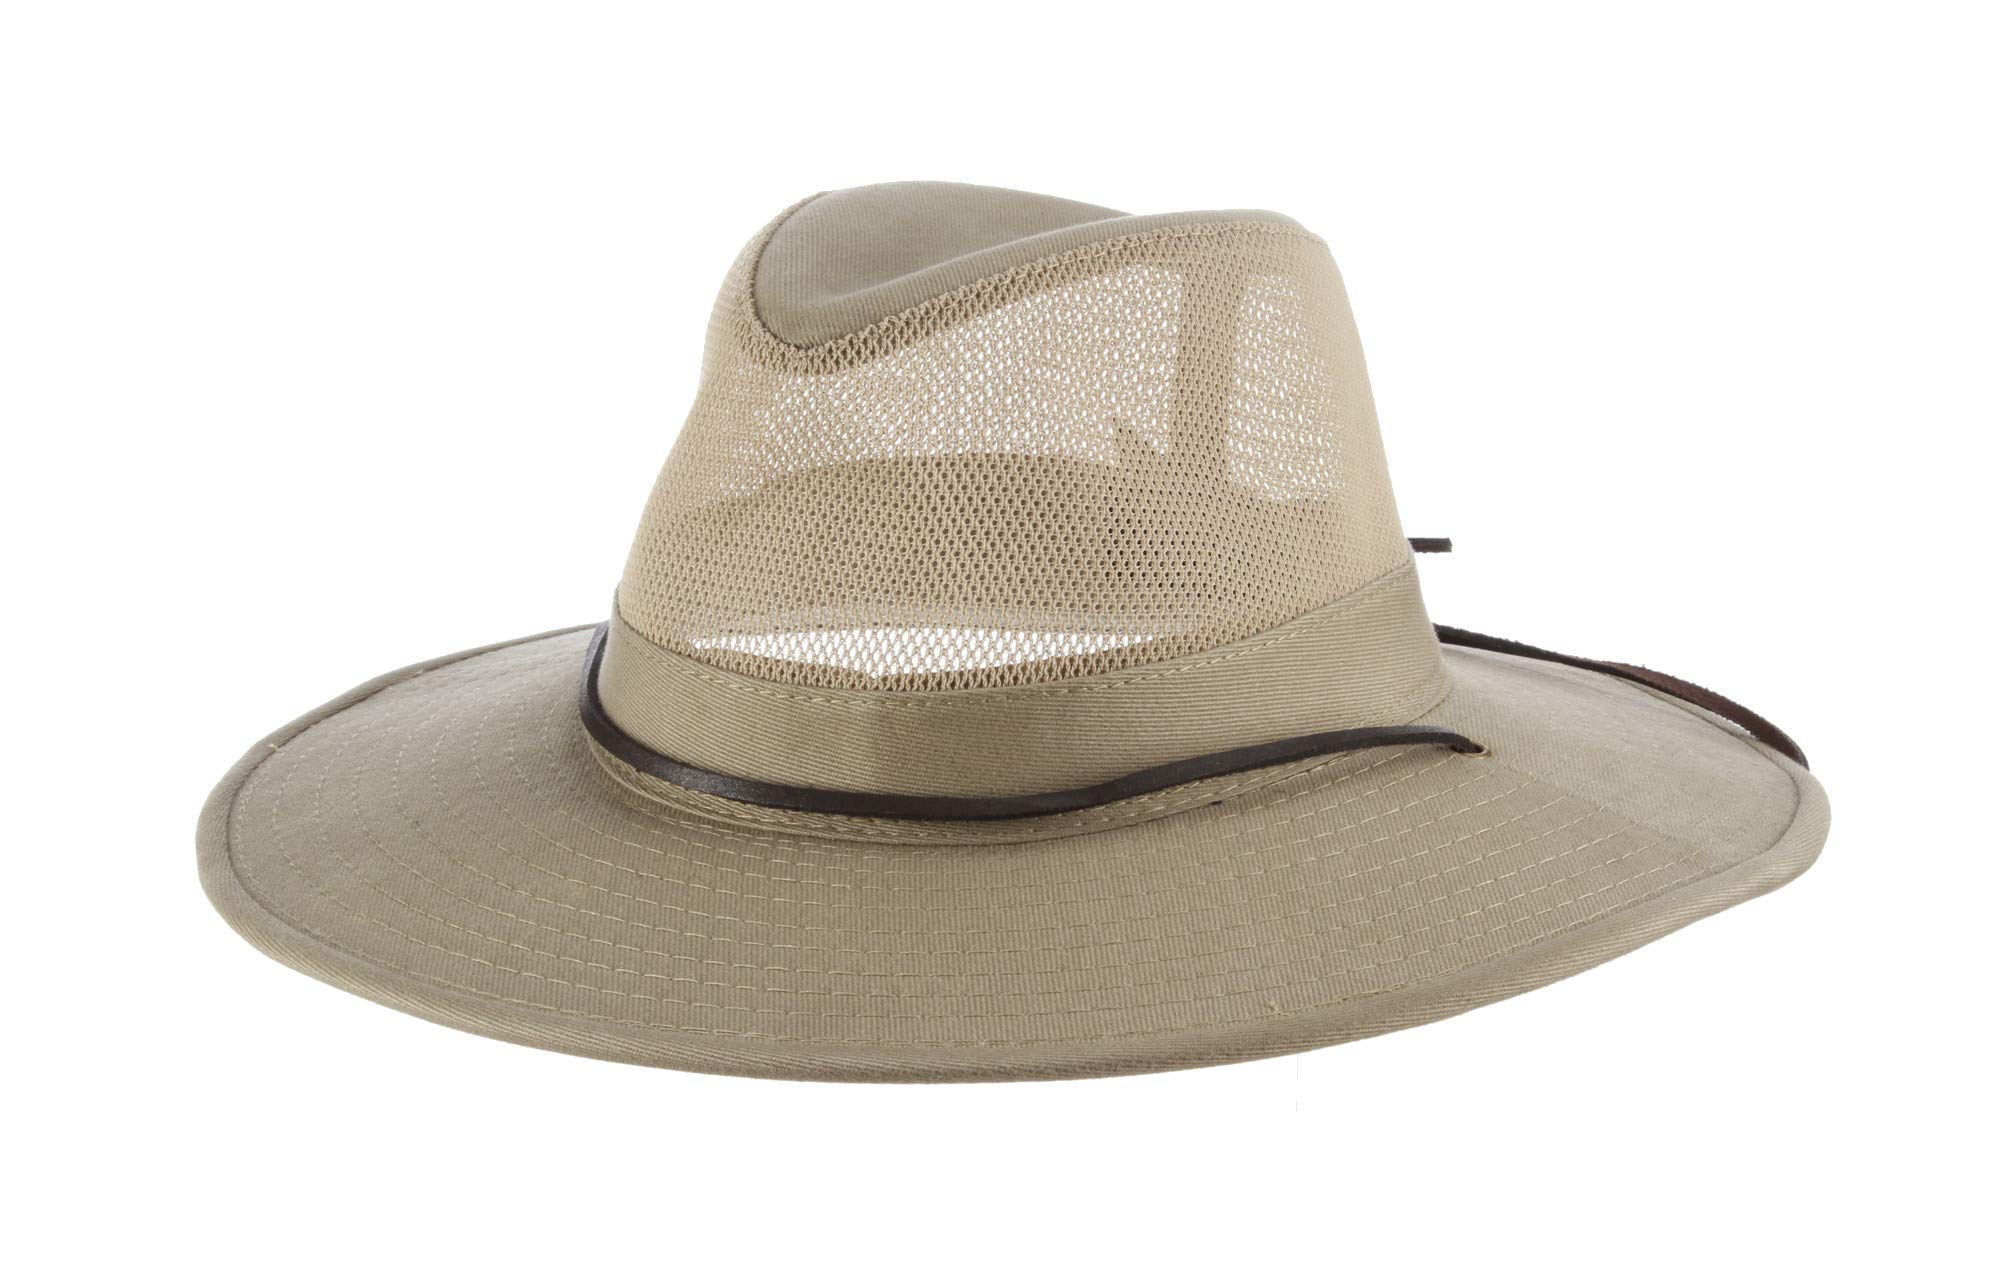 22cc643b0d4fb Dorfman Pacific Men s Brushed Twill-and-Mesh Safari Hat with Genuine Leather  Trim product